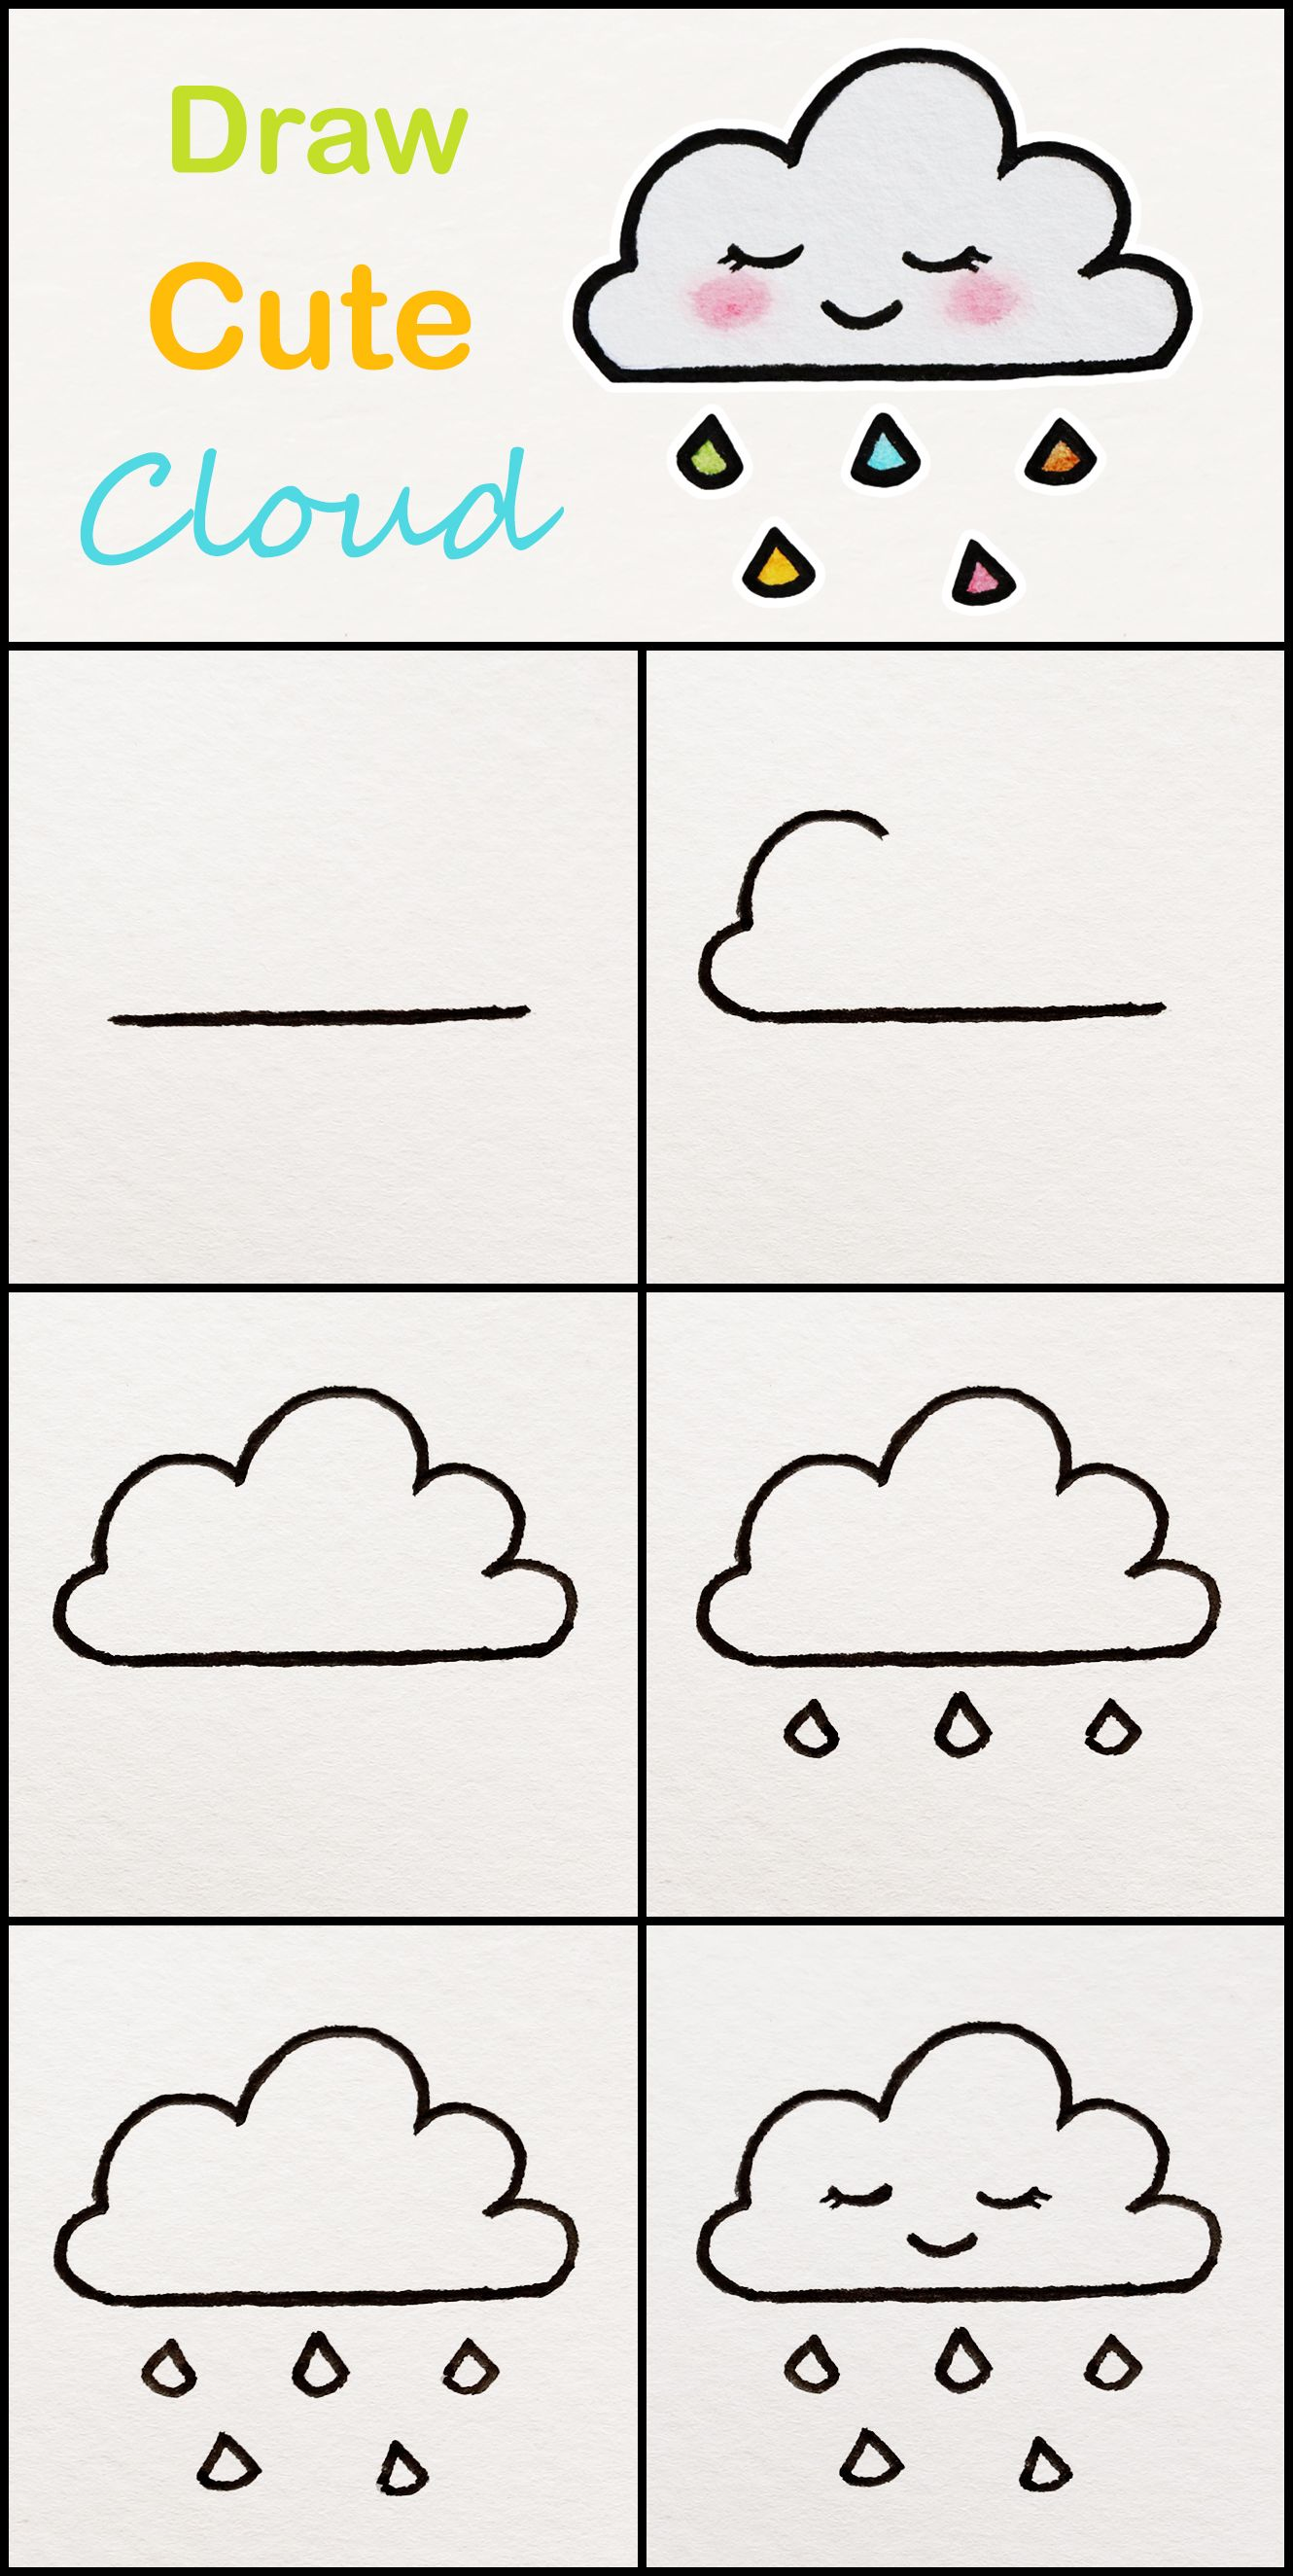 How to draw a cute cloud | Step by step art for kids